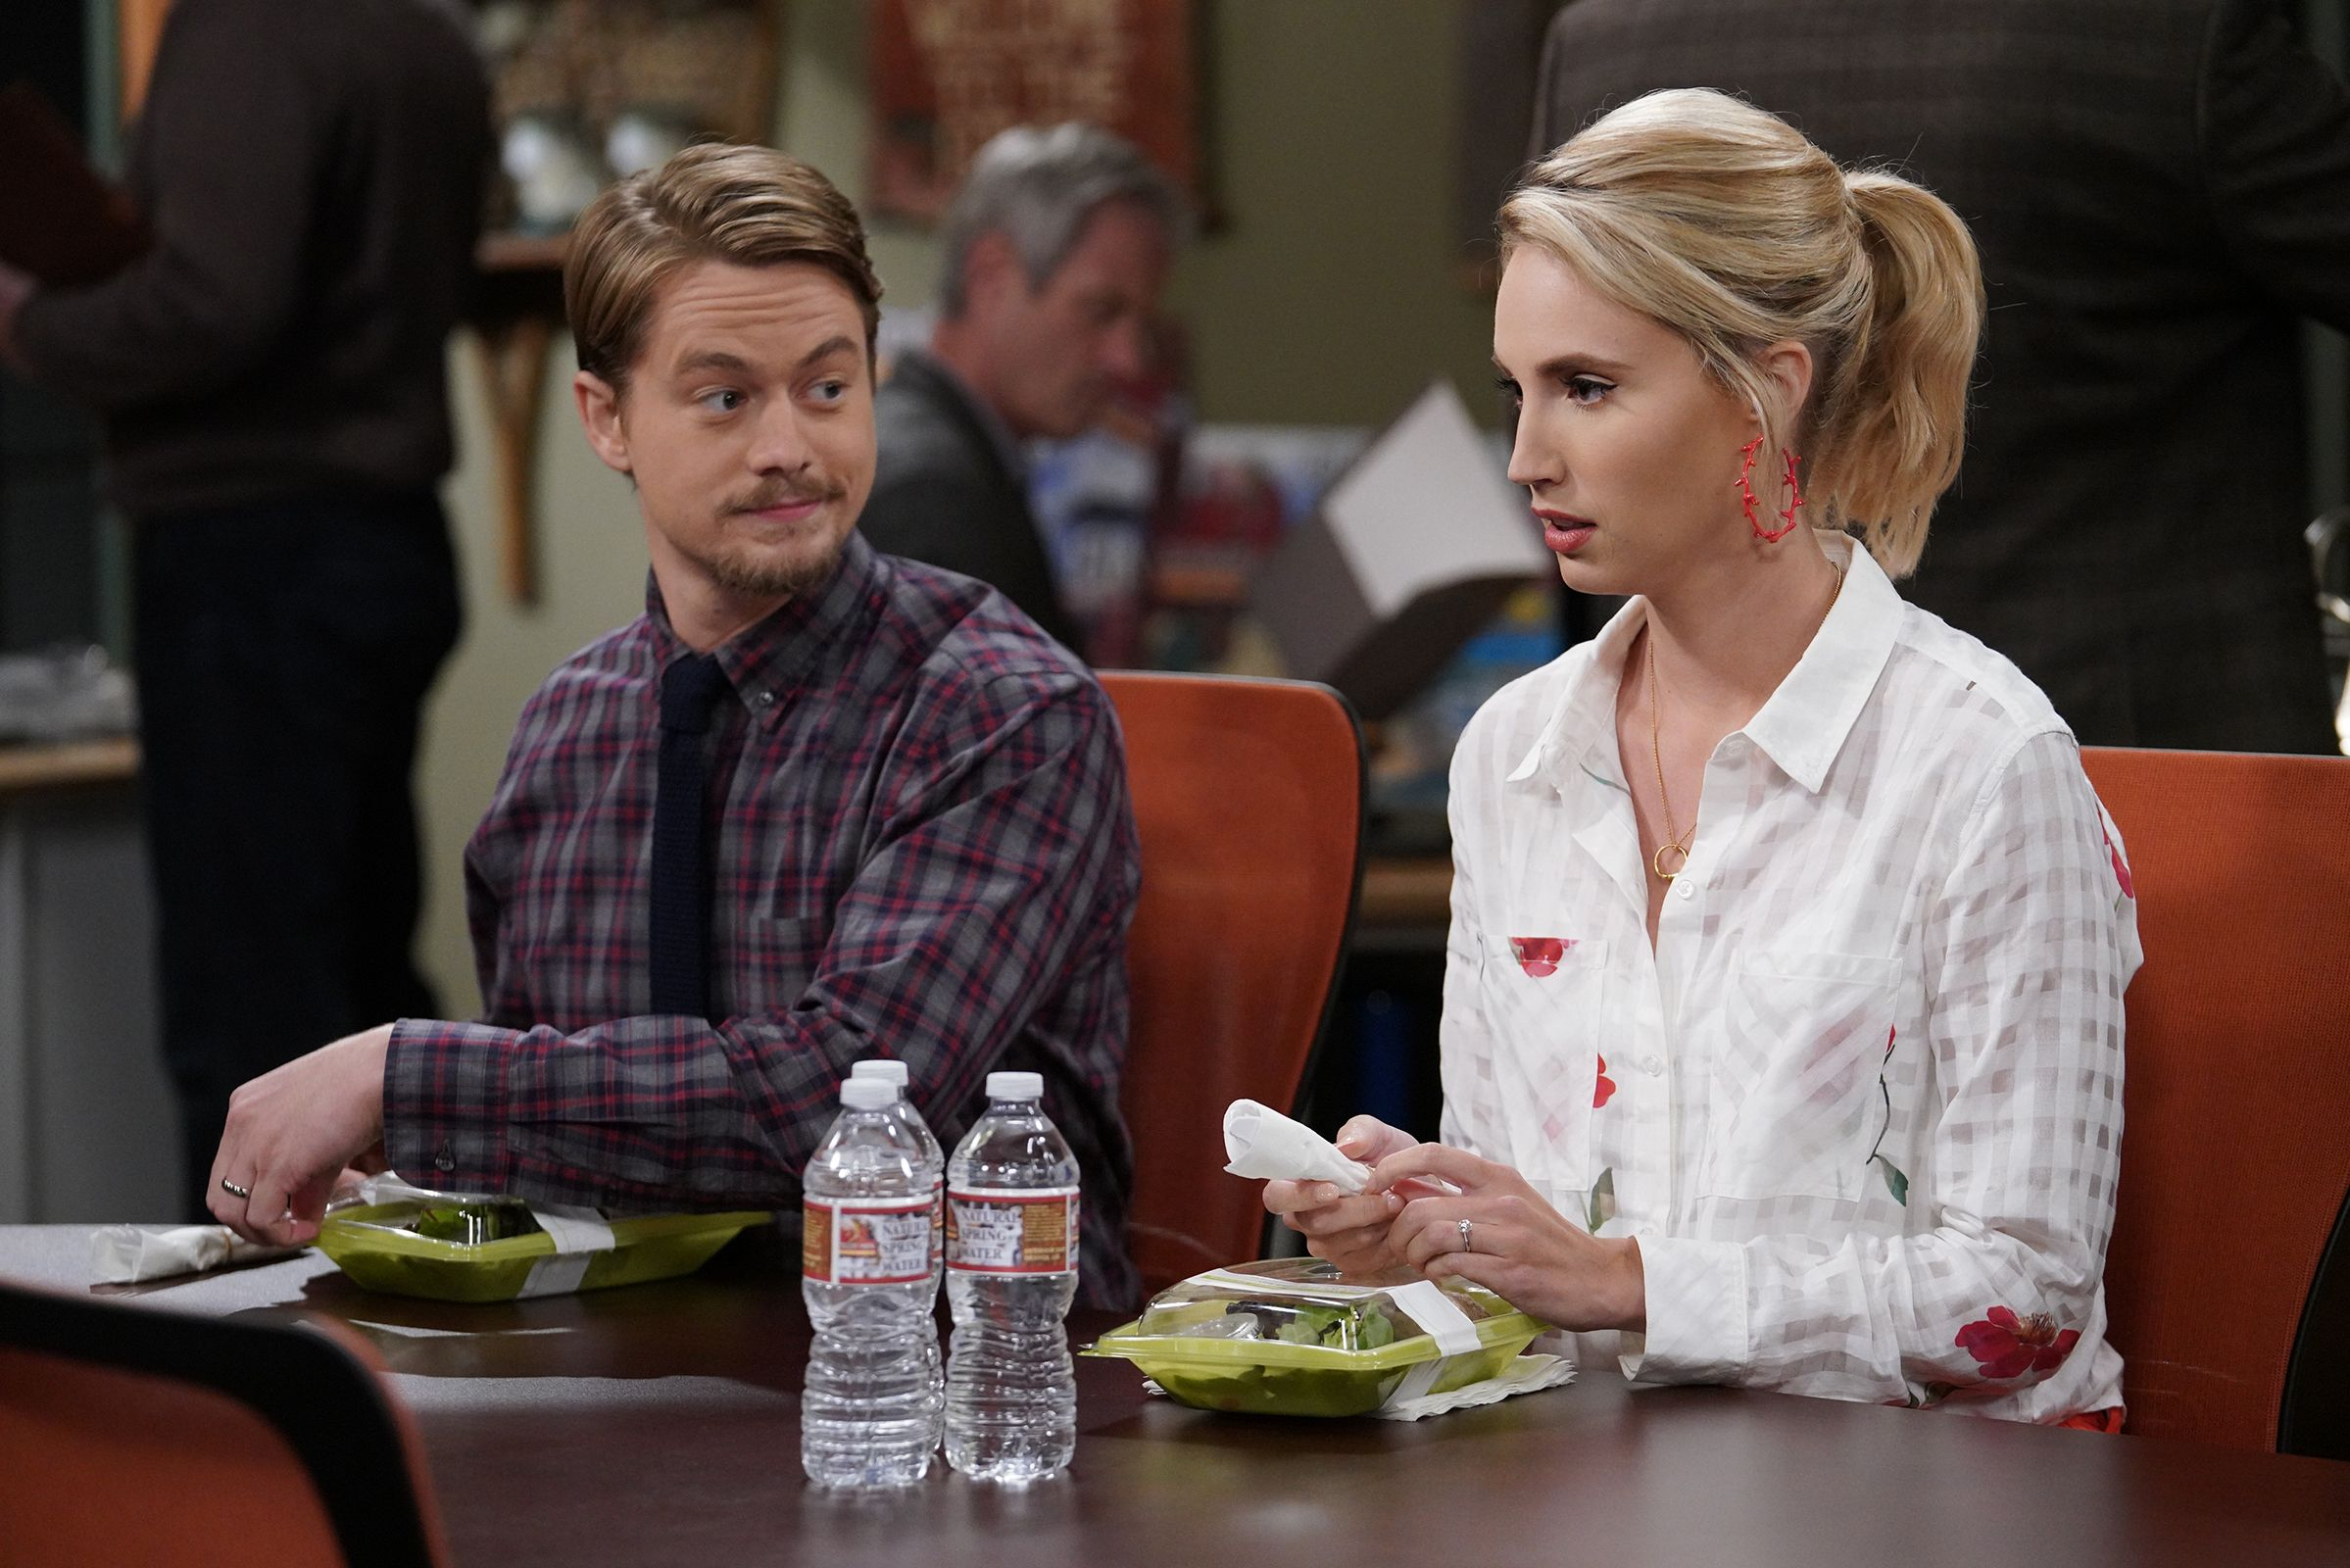 'Last Man Standing' Star Molly McCook Pens a Candid Letter About Her Time on the Show